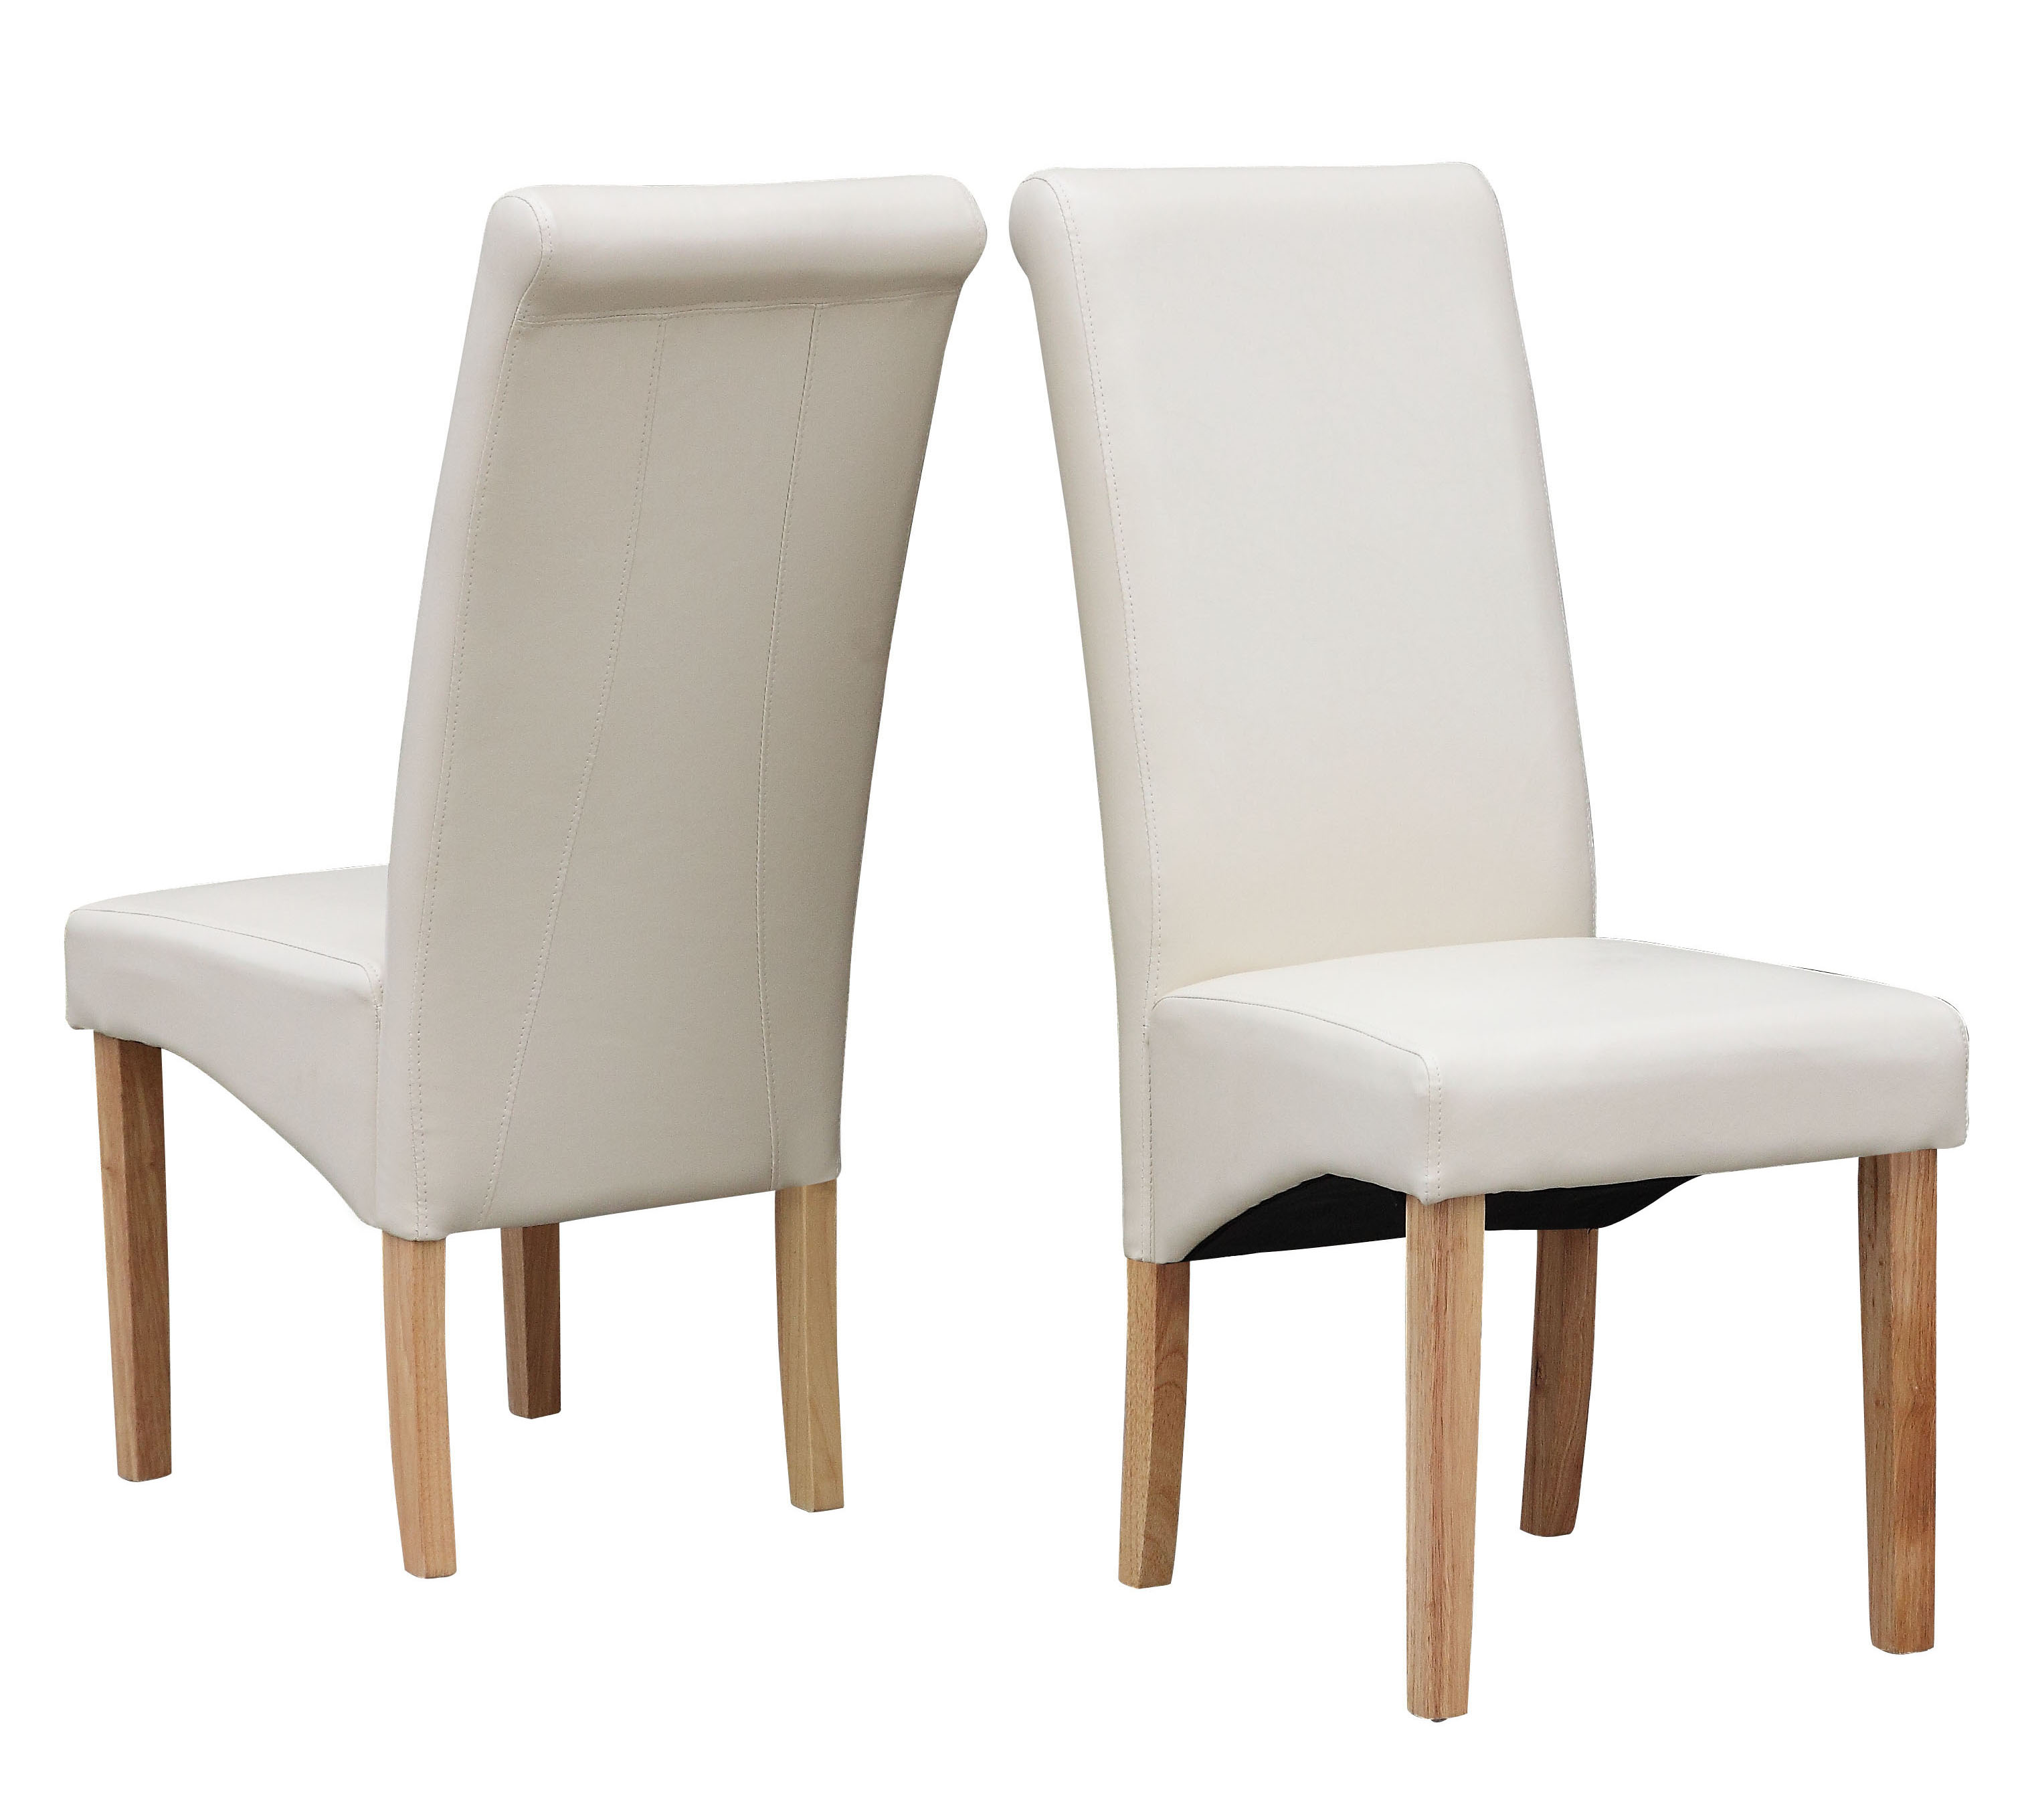 Cream Modern Dining Room Chair Faux Leather Roll Top ...